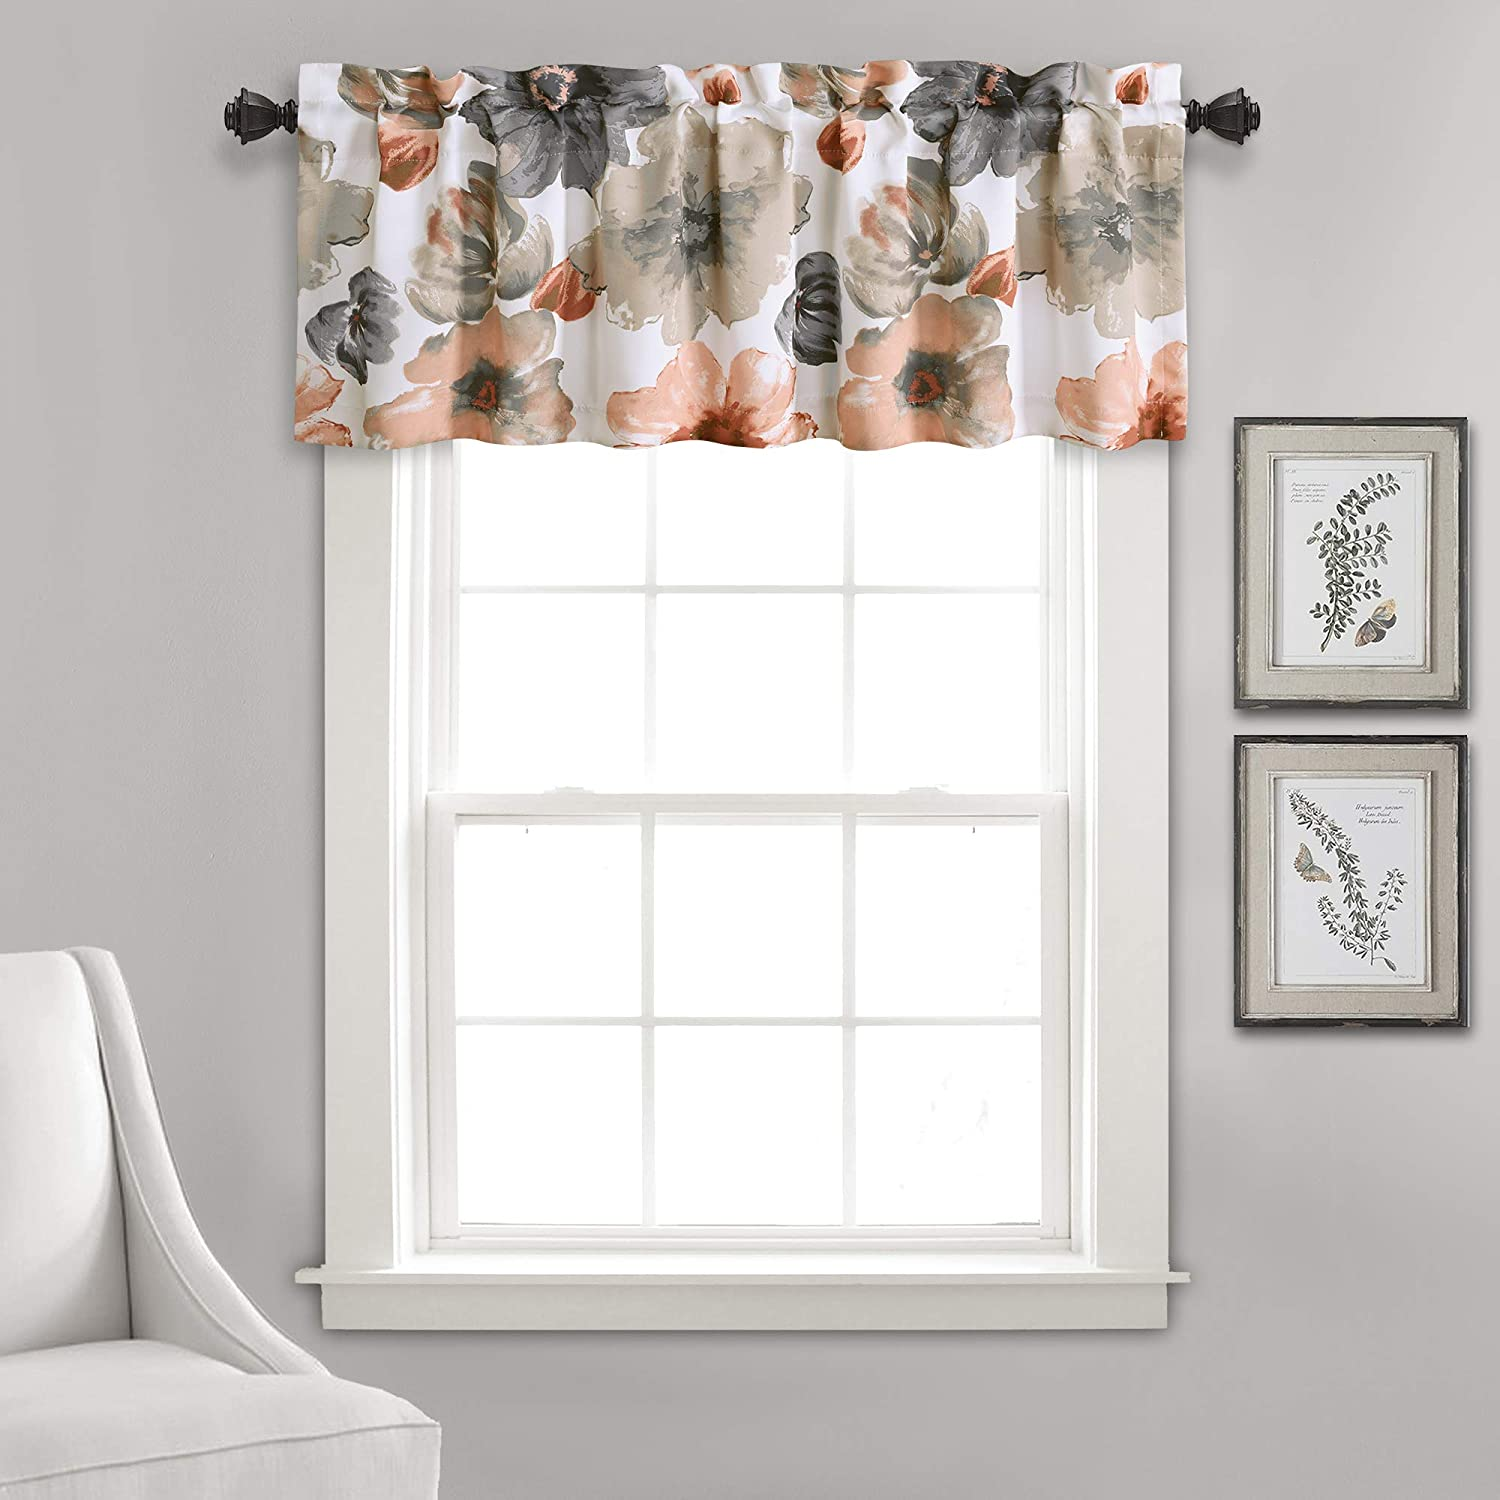 "Lush Decor Leah Room Darkening Widow Curtain Valance, 18"" x 52"" + 2"" Header, 18"" L, Leah RD Val Coral/Gray"